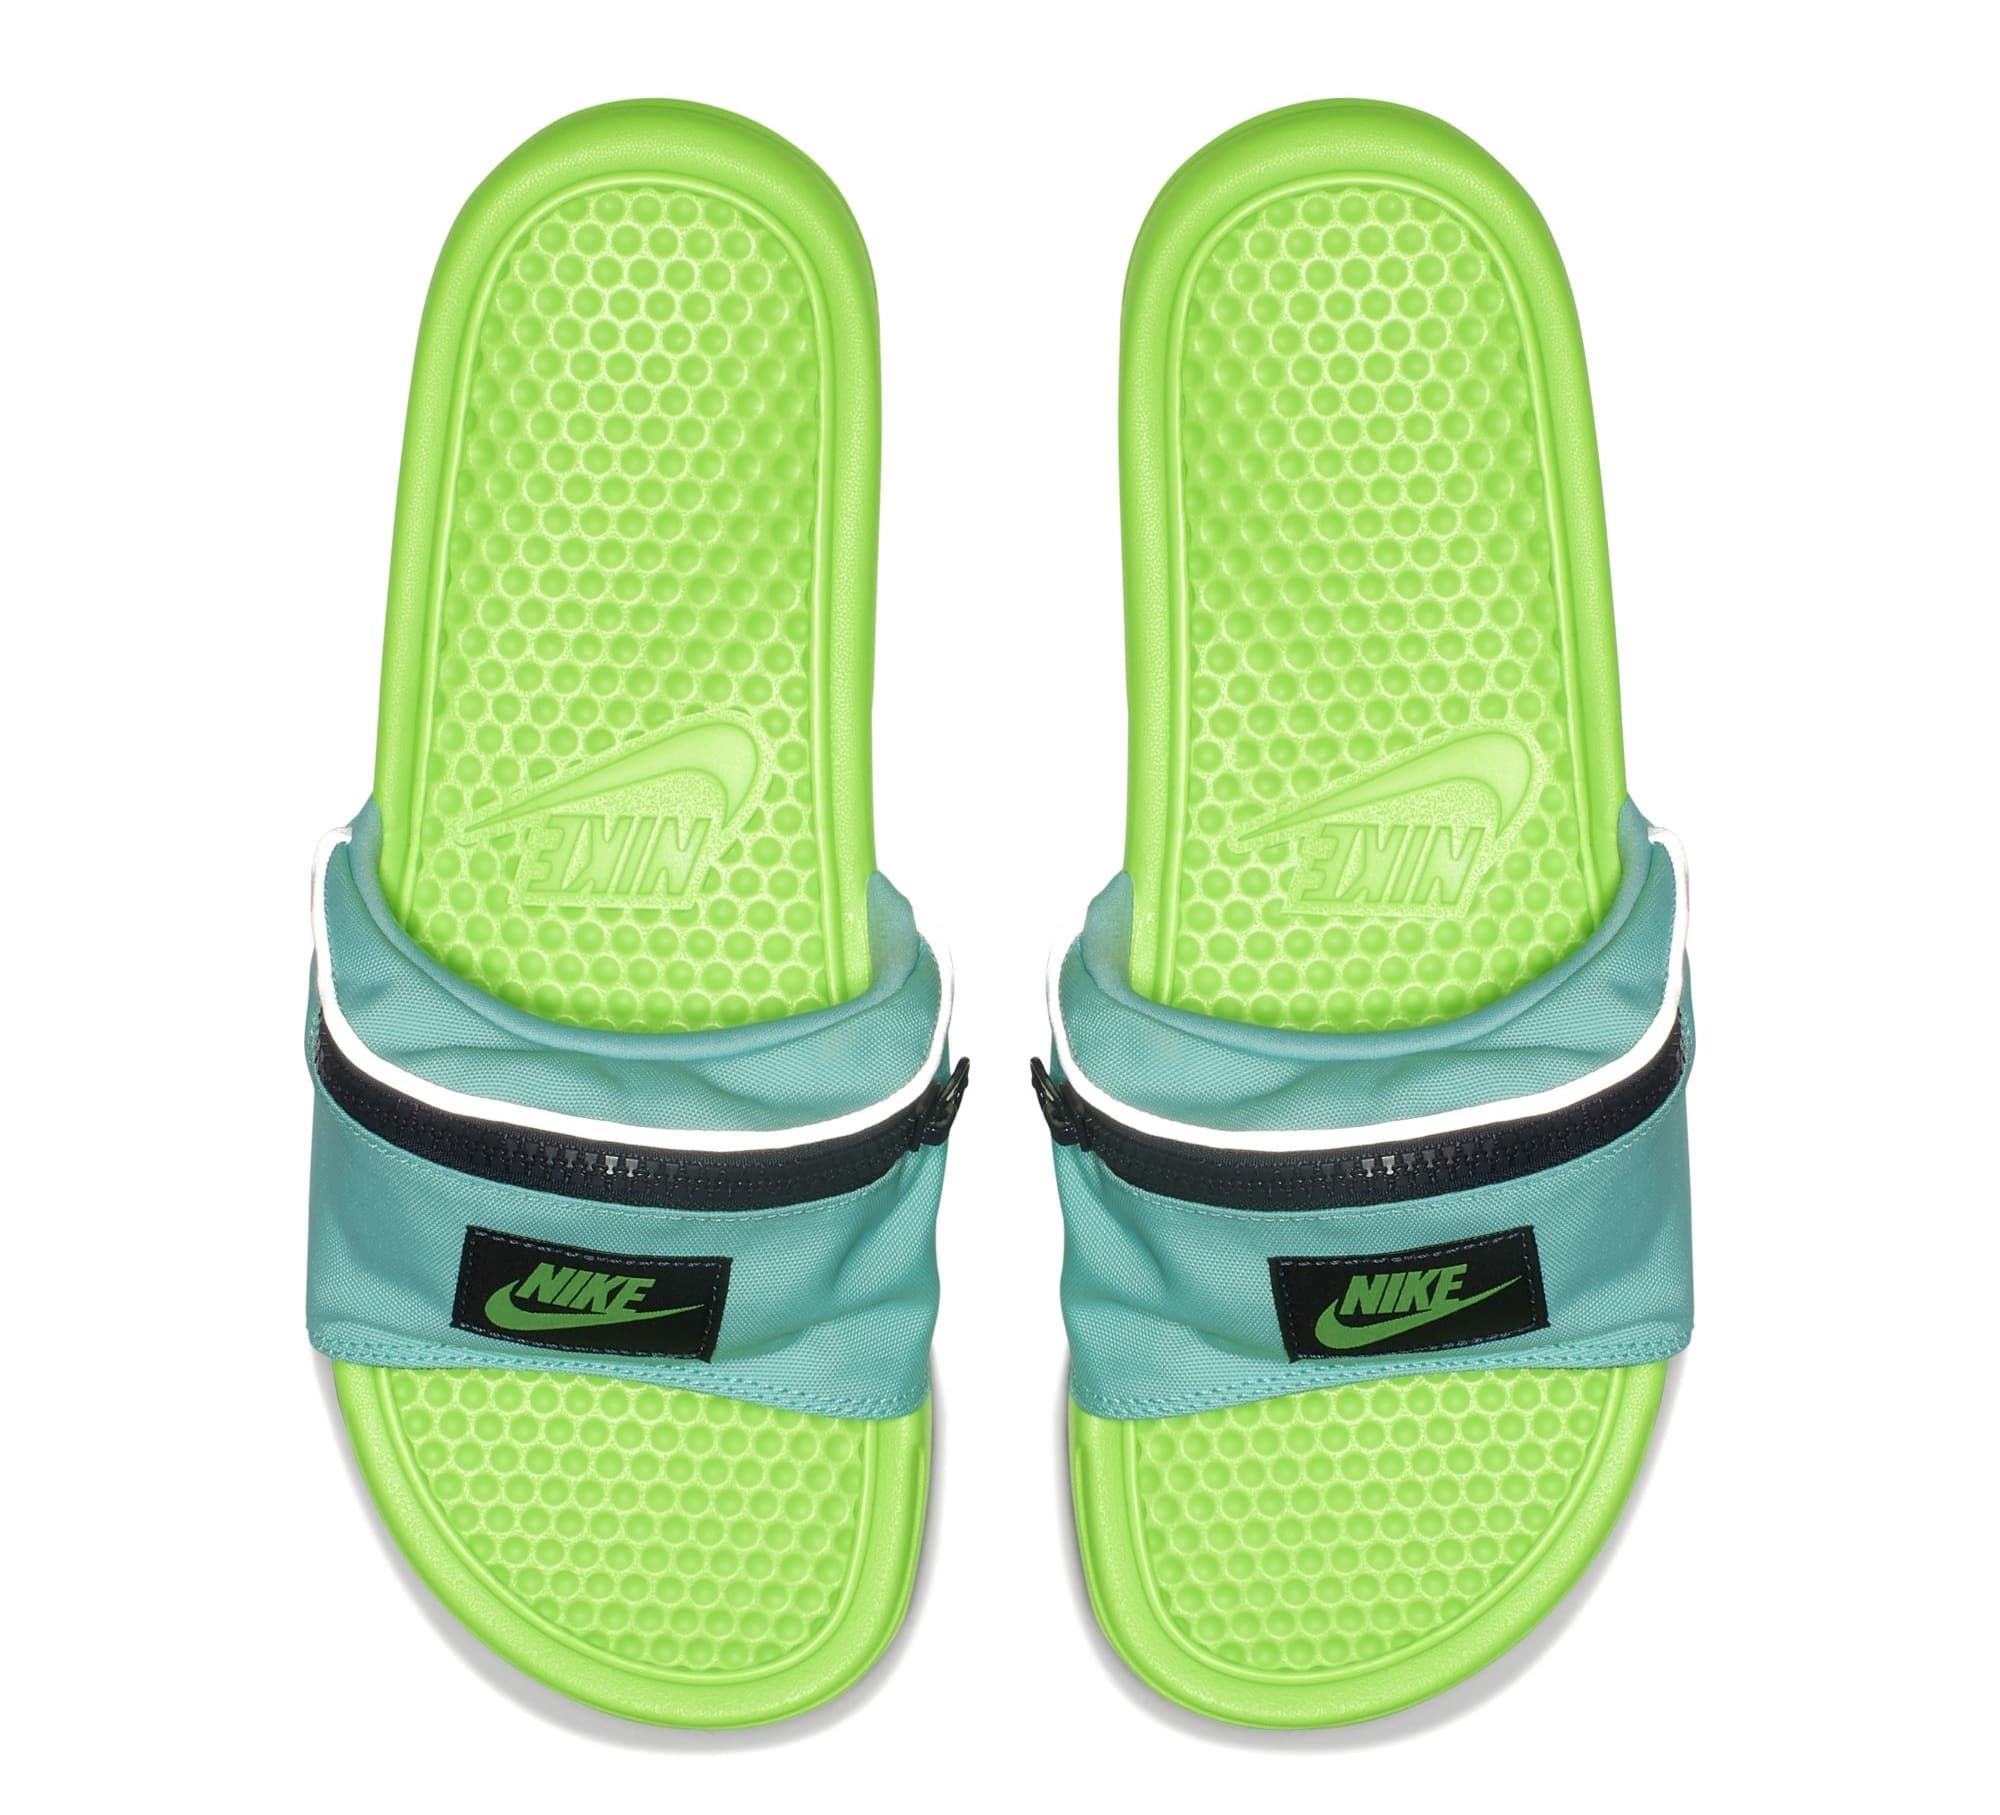 7522802ed29 Nike Benassi JDI  Fanny Pack  Green (Top)